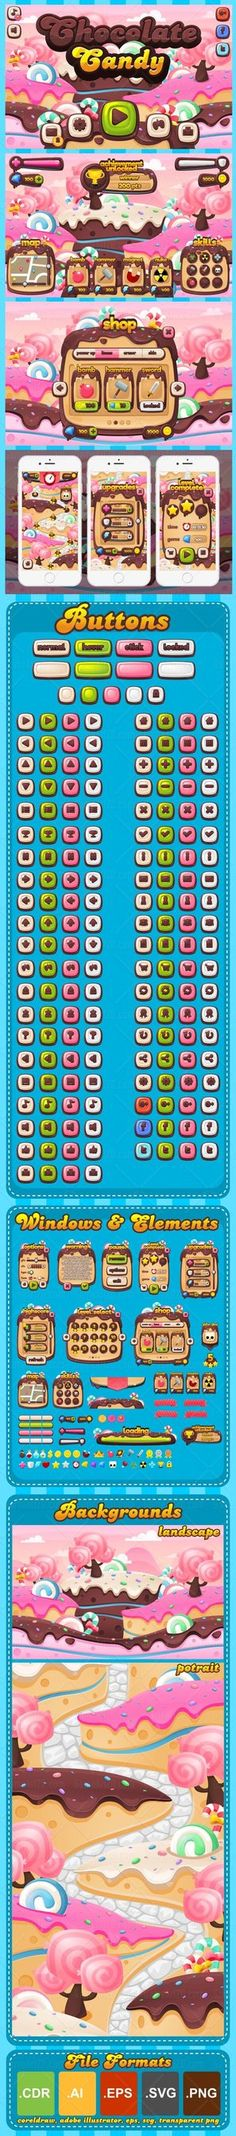 A complete set of graphical user interface (GUI) to build 2D video games. With chocolate, candy, & fantasy theme. Suitable for casual, puzzle, match three, or other games with similar theme. #2d #game #assets #ui #gui #candy #cake